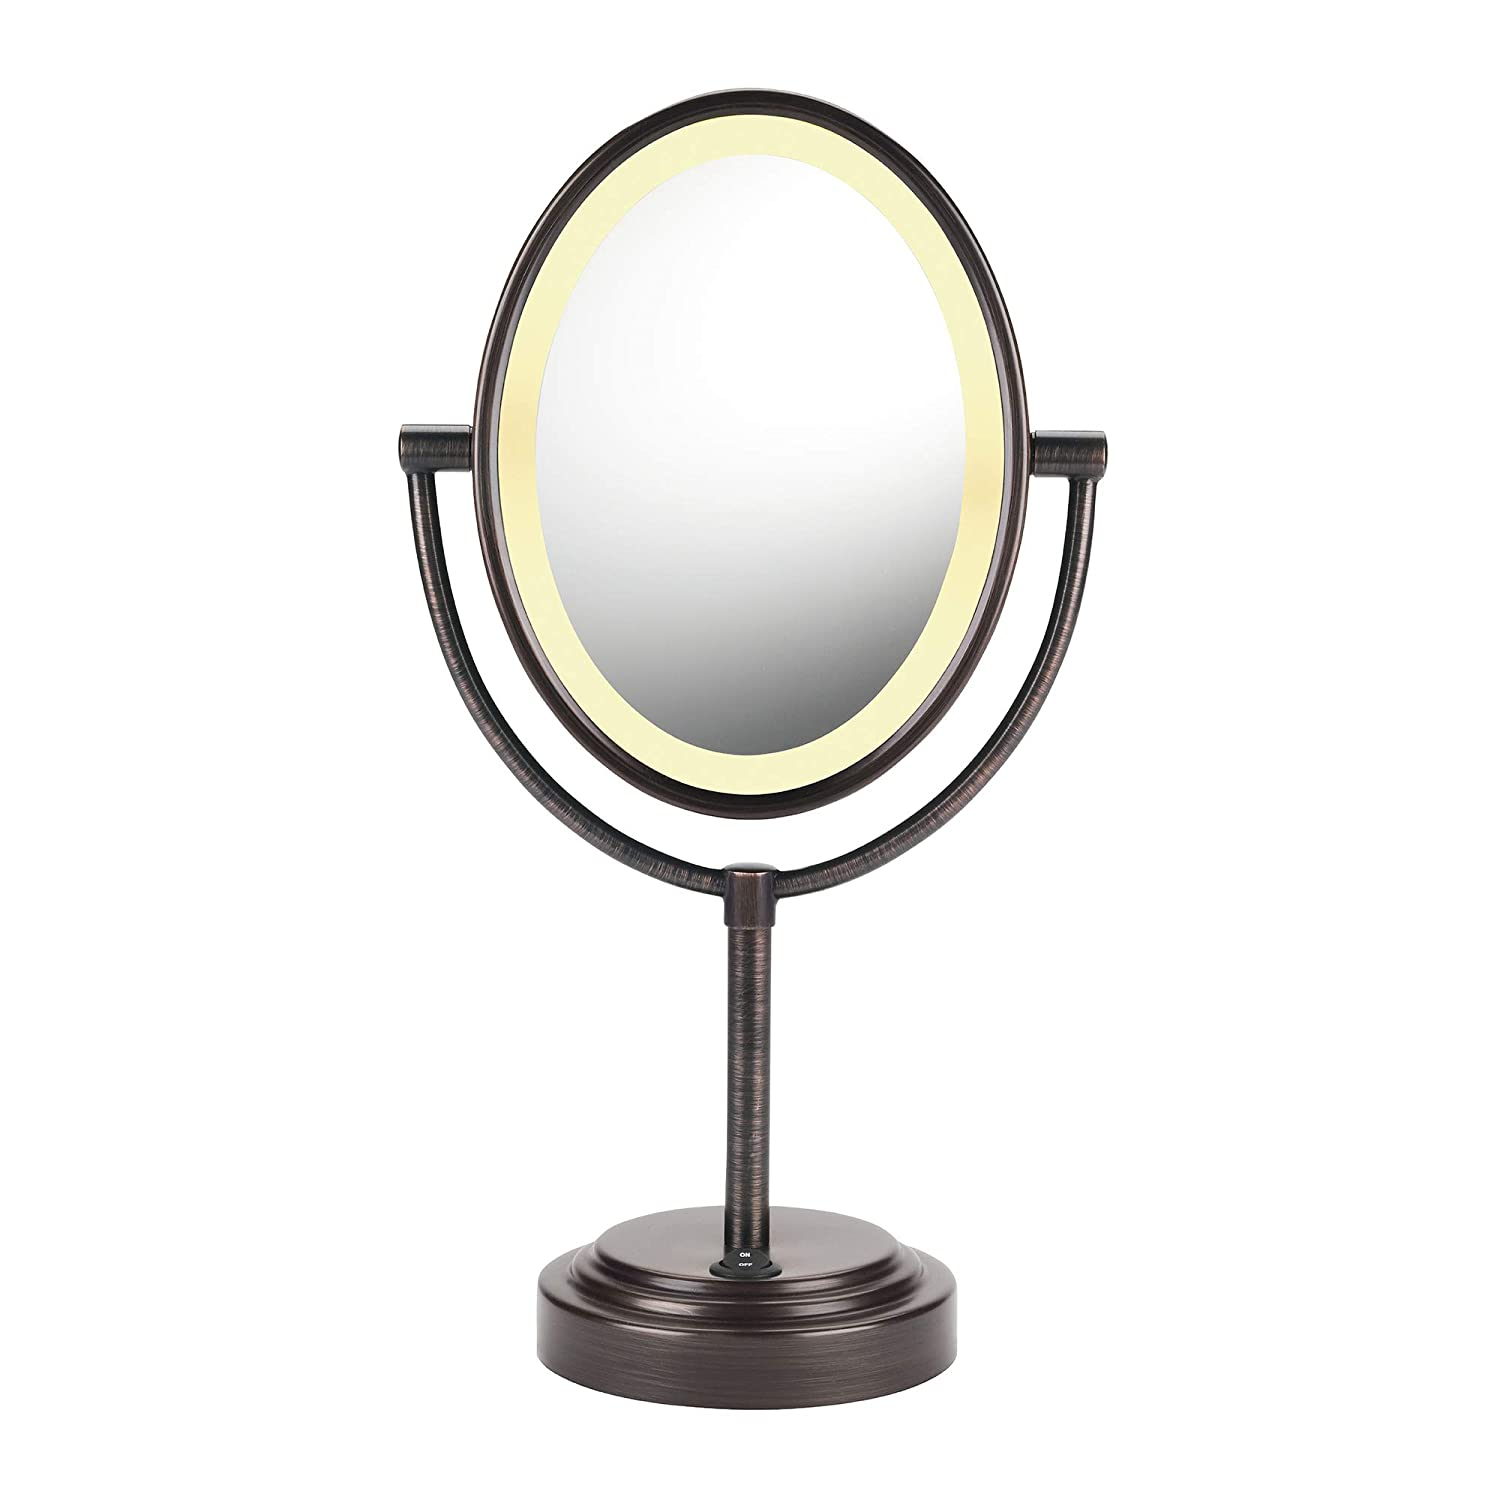 Amazon Com Conair Reflections Double Sided Lighted Vanity Makeup Mirror 1x 7x Magnification Oiled Bronze Personal Makeup Mirrors Appliances